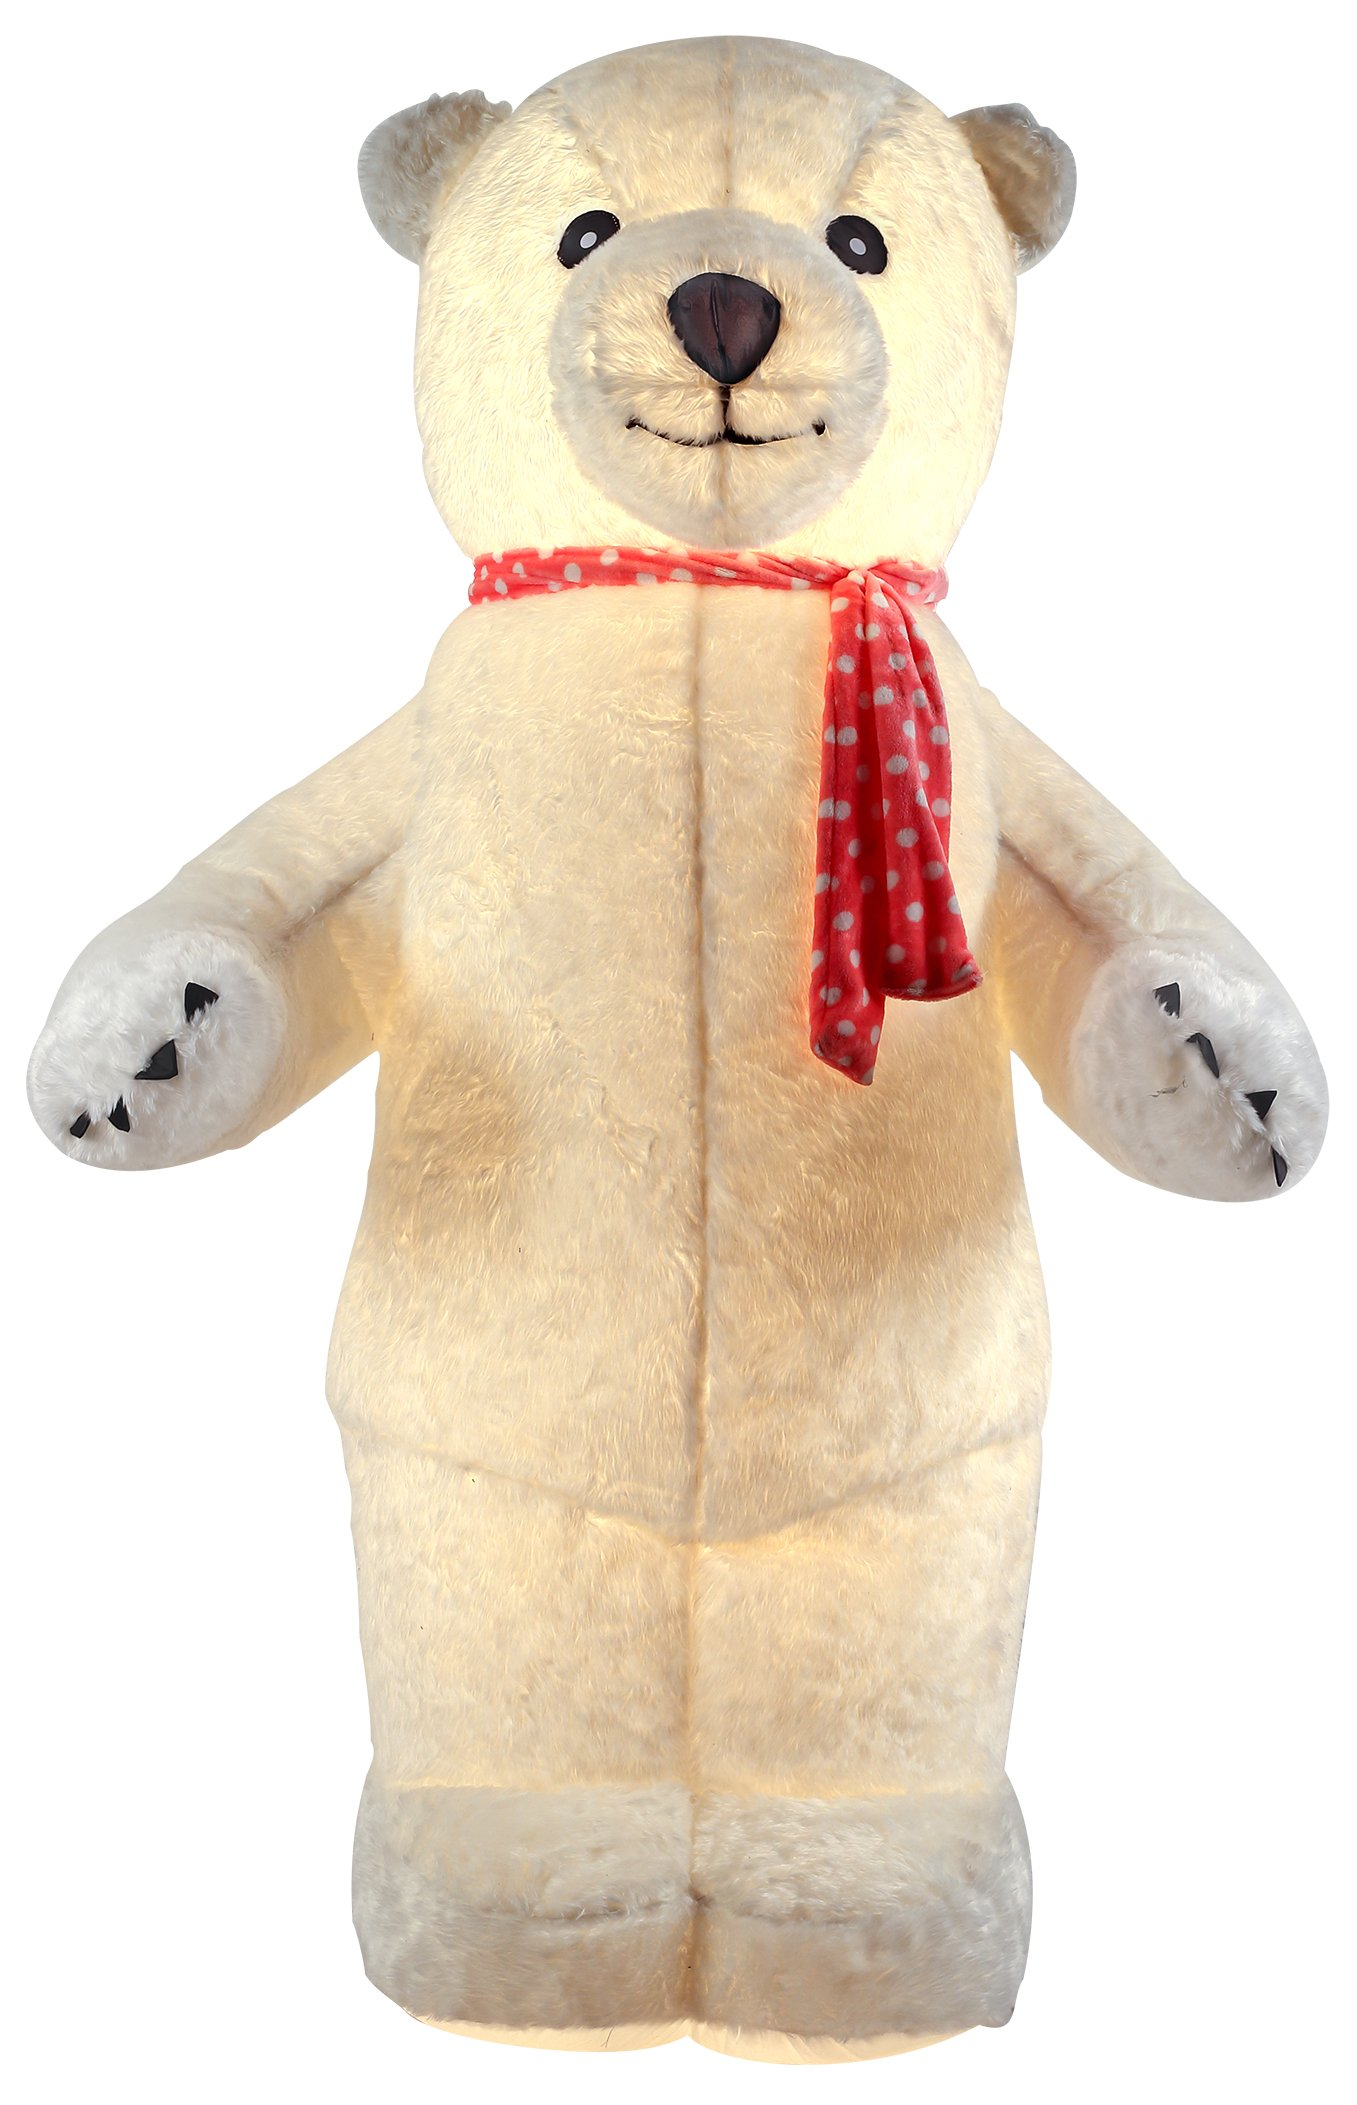 VIDAMORE 6.5FT Inflatable Standing Polar Bear with Plush Fabric Cover Indoor Outdoor Christmas Decorations